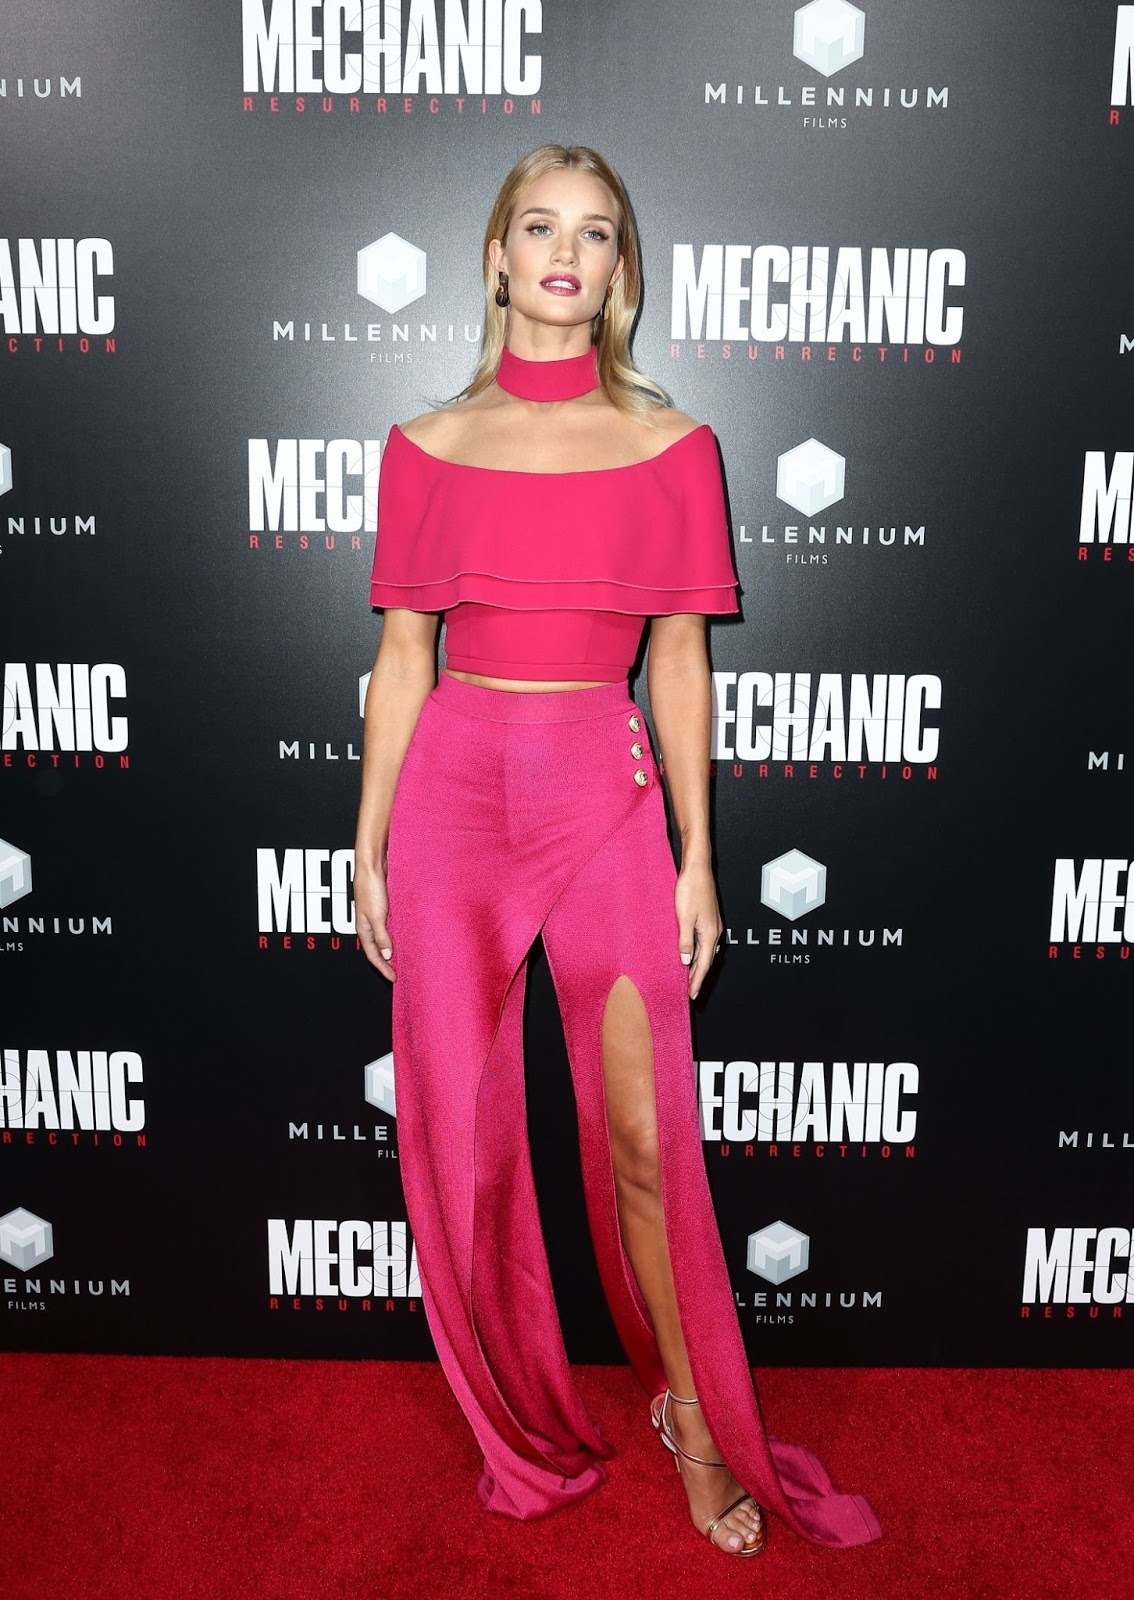 Rosie Huntington-Whiteley wears Balmain to the 'Mechanic:Resurrection' premiere in Hollywood